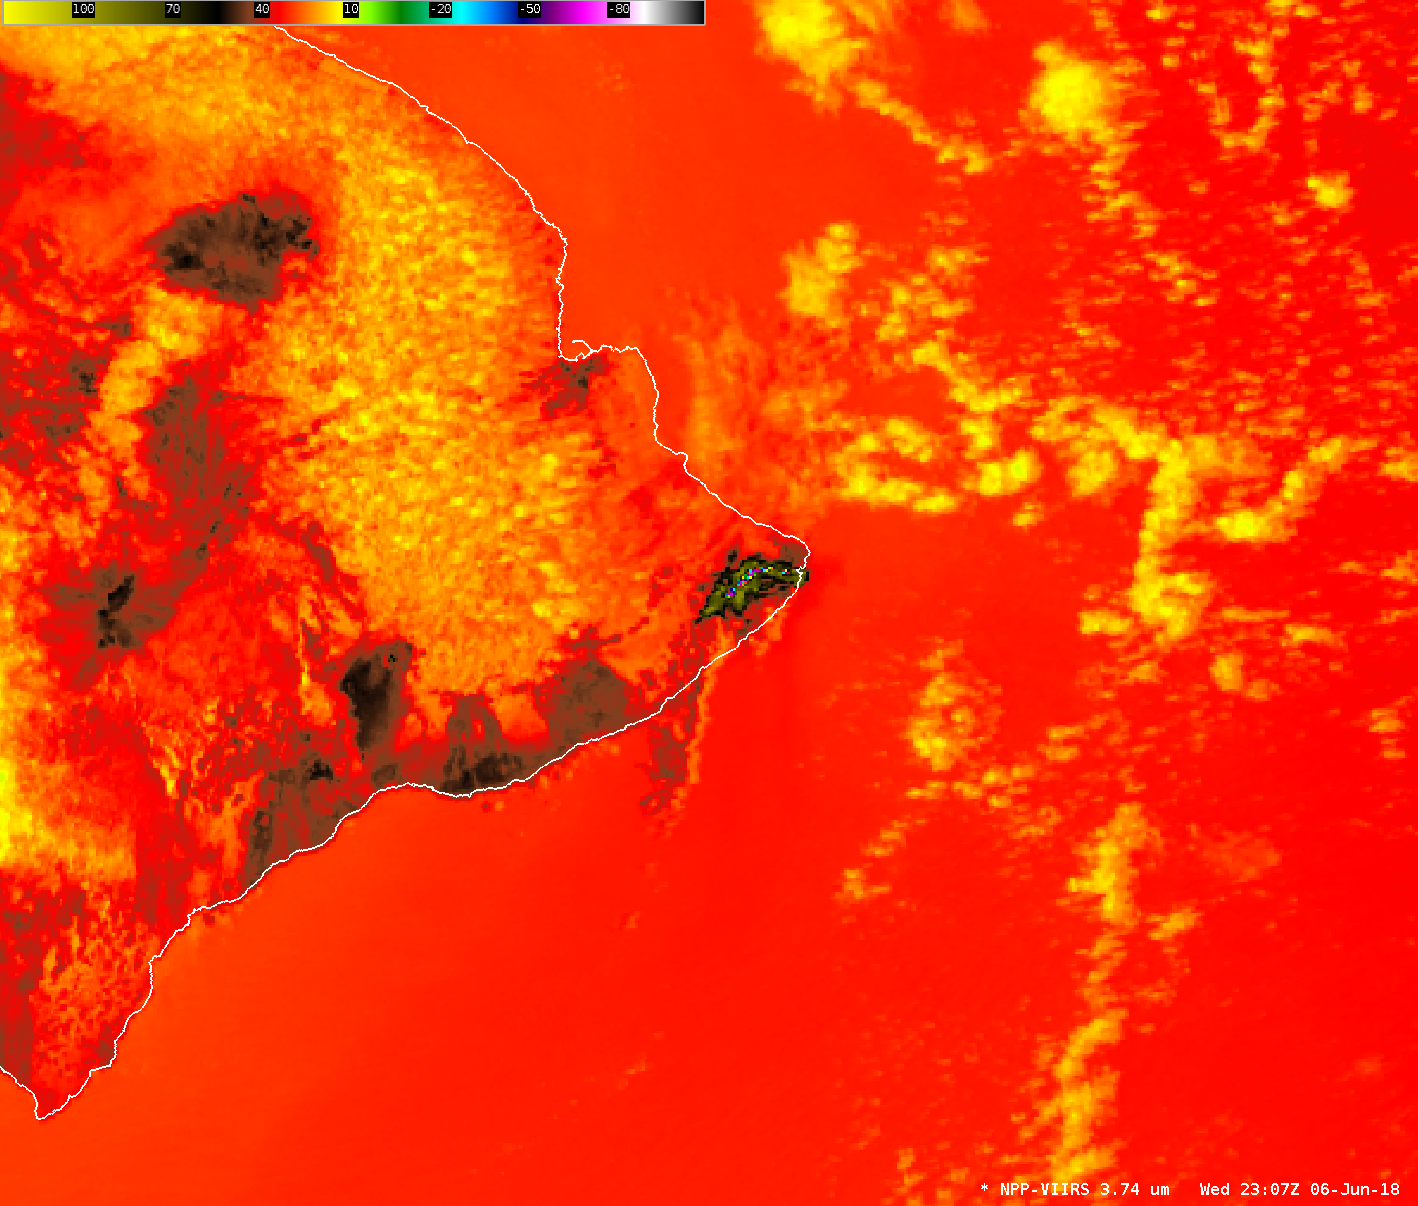 Suomi NPP VIIRS Shortwave Infrared (3.74 µm) image [click to enlarge]